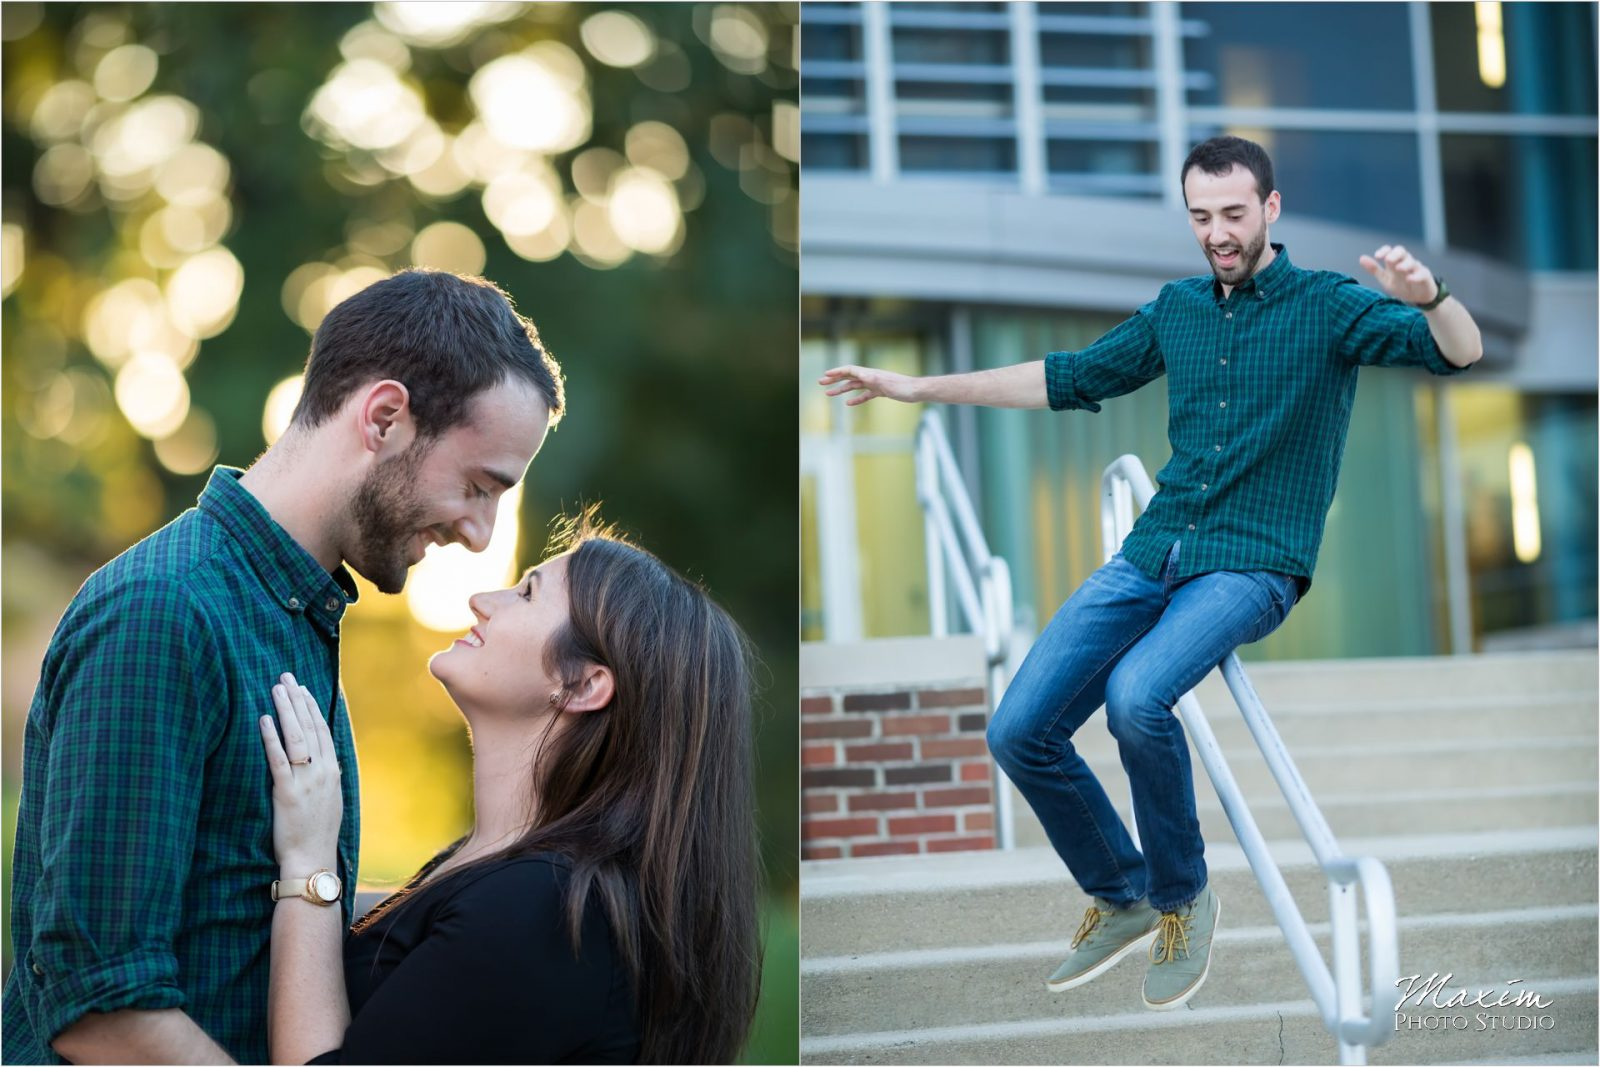 Dayton Wedding Photographers University of Dayton Engagement